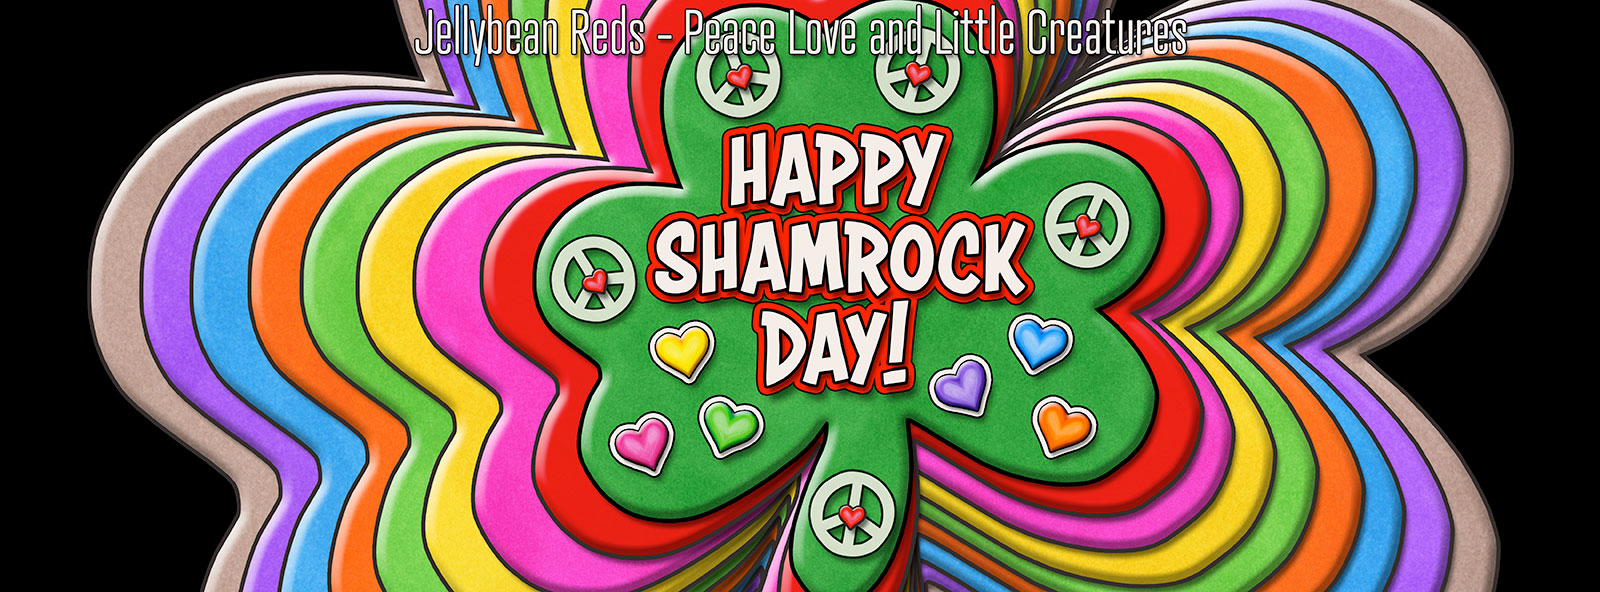 Happy Shamrock Day - Rainbow Shamrocks with Peace Signs and Hearts